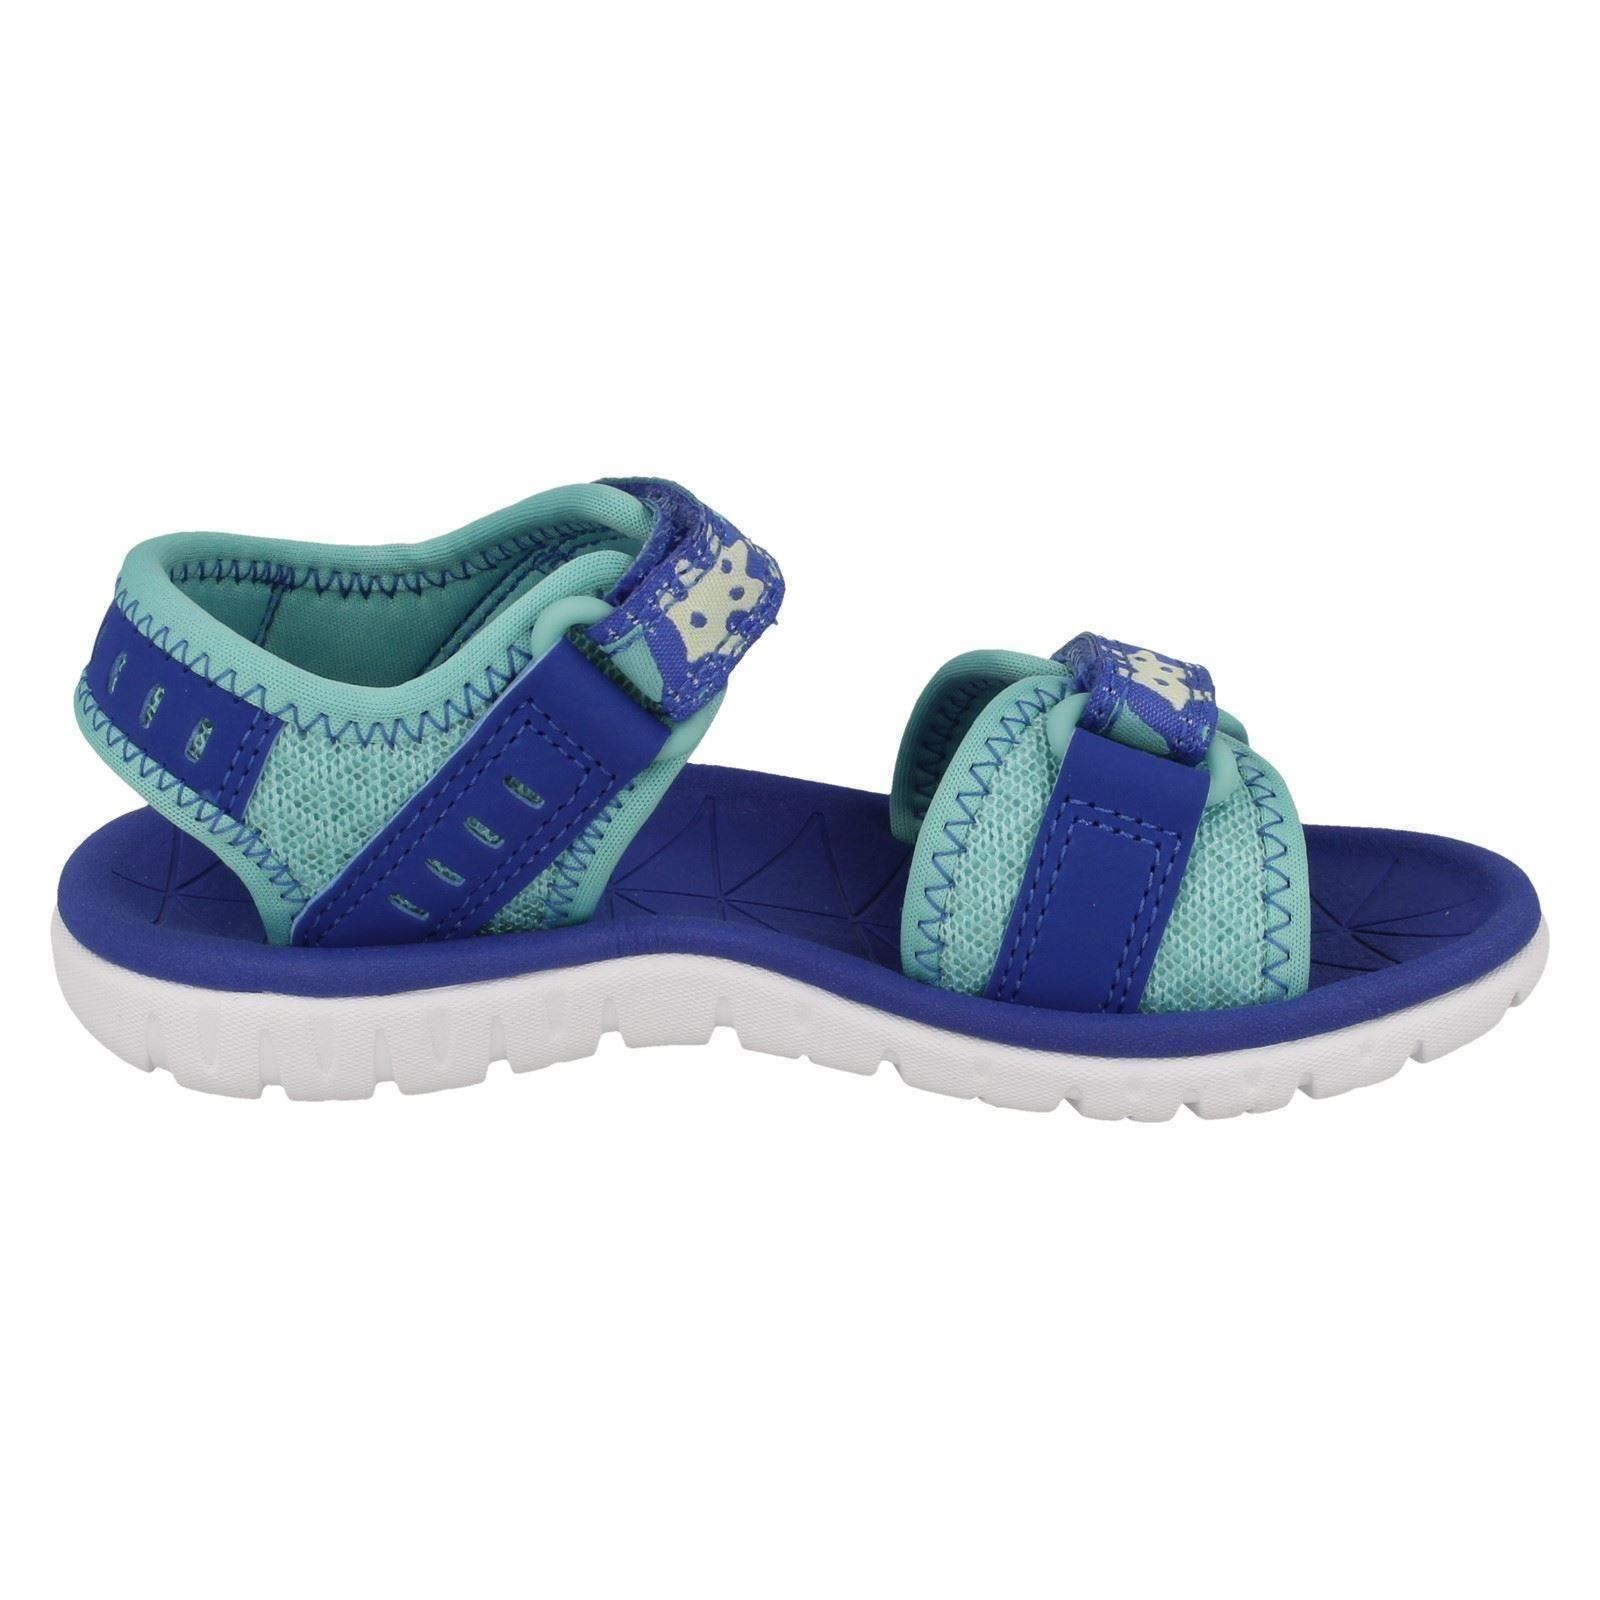 blu Aqua Skies Sandals Surfing Casual Clarks Girls XqxwYBY